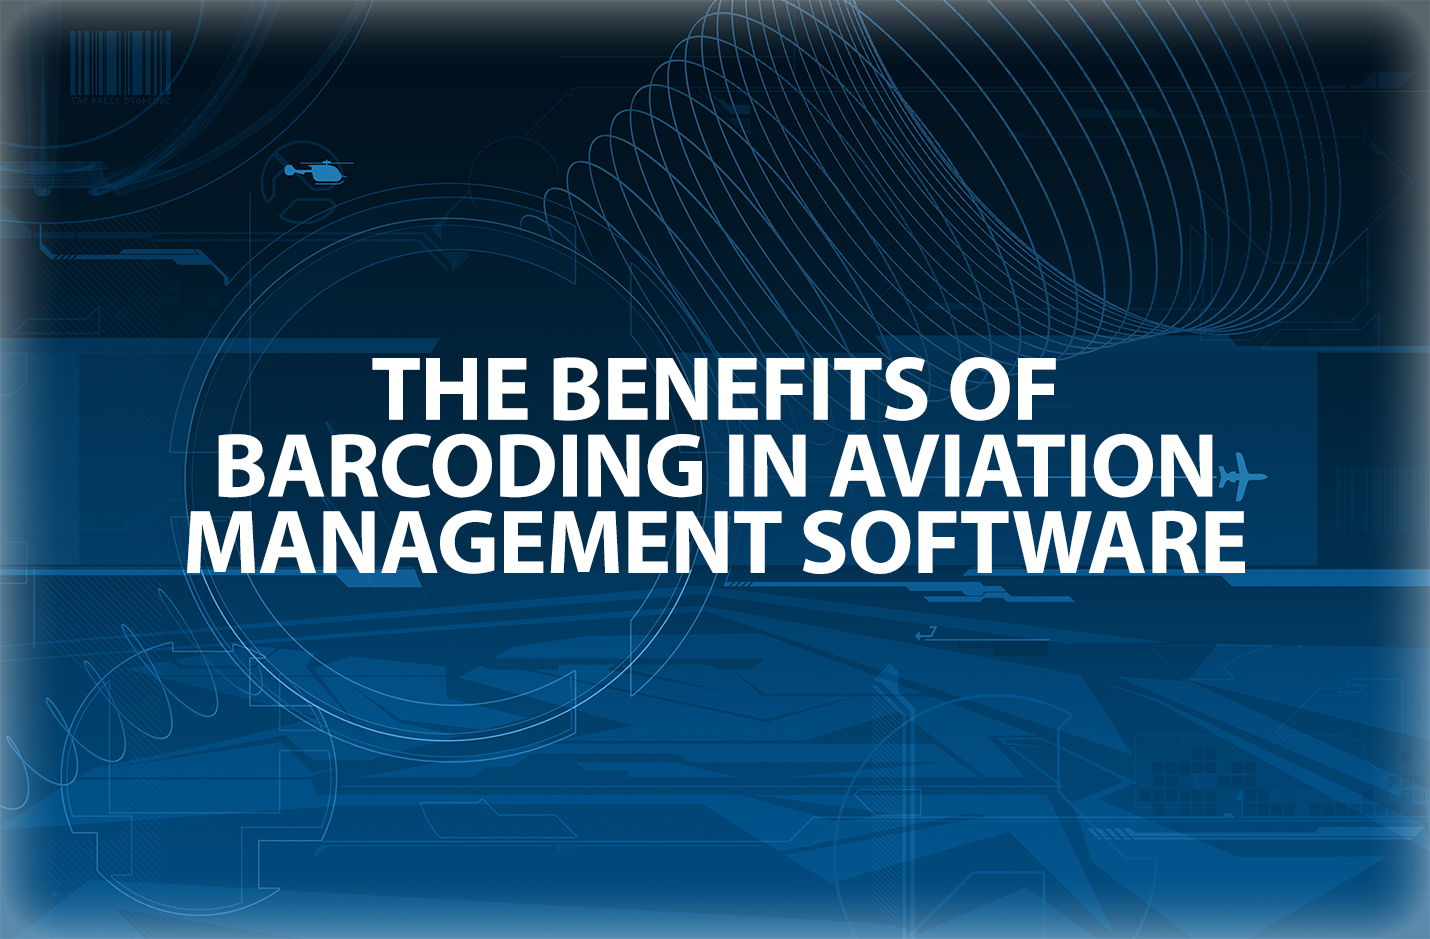 The Benefits of Barcoding in Aviation Management Software - text box image